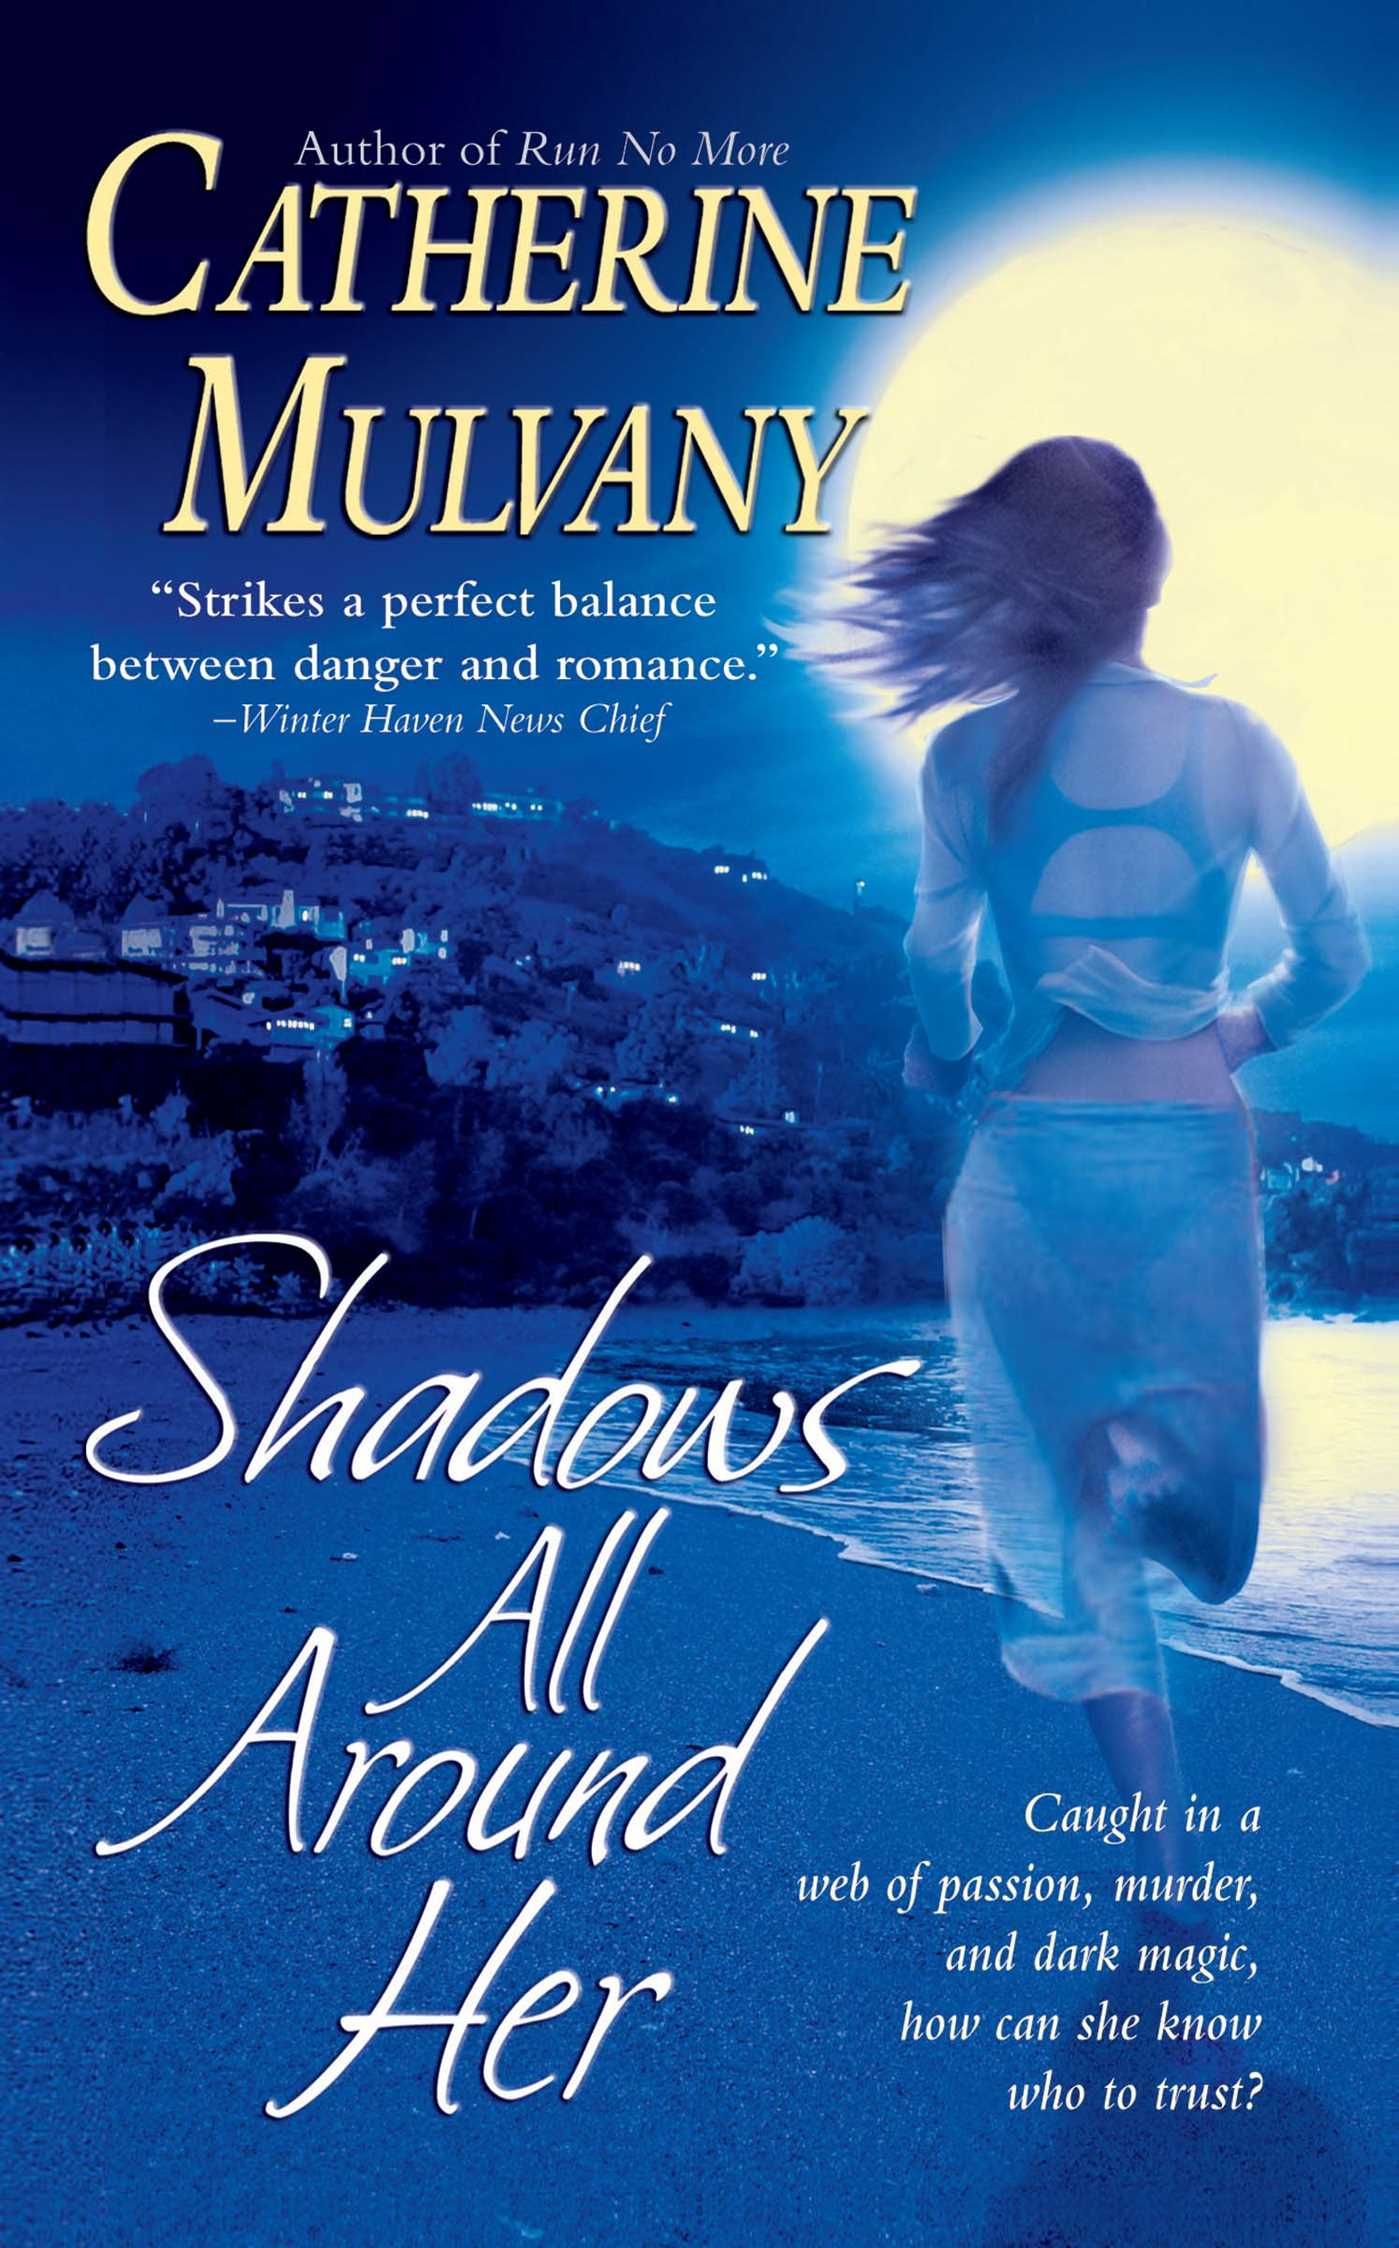 Shadows-all-around-her-9781451613131_hr